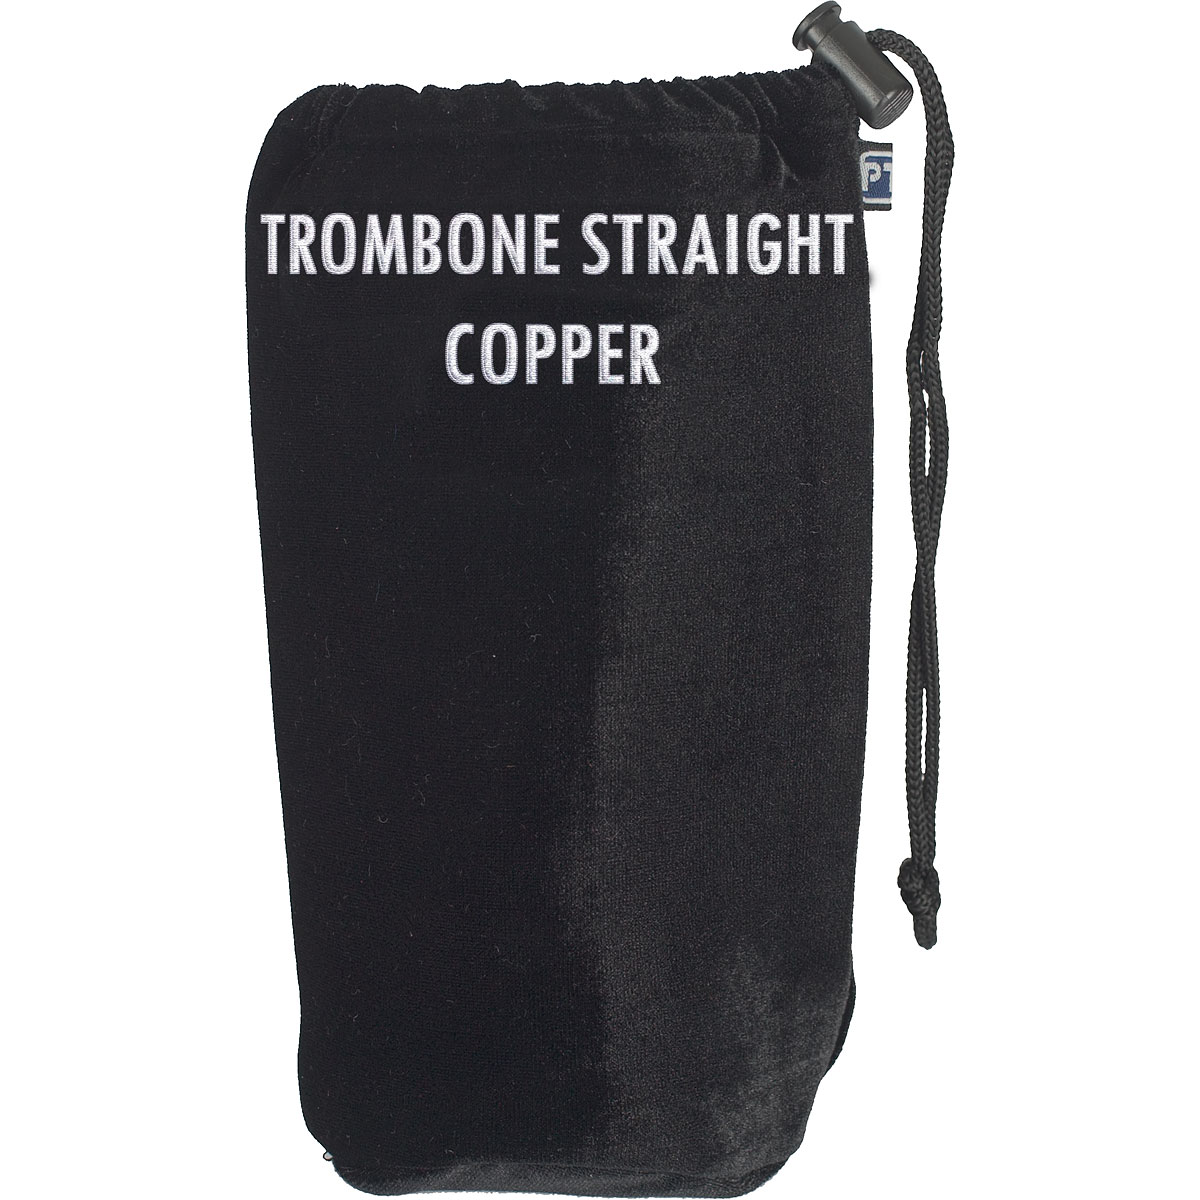 PROTEC Sock For Trombone Copper Straight Mute